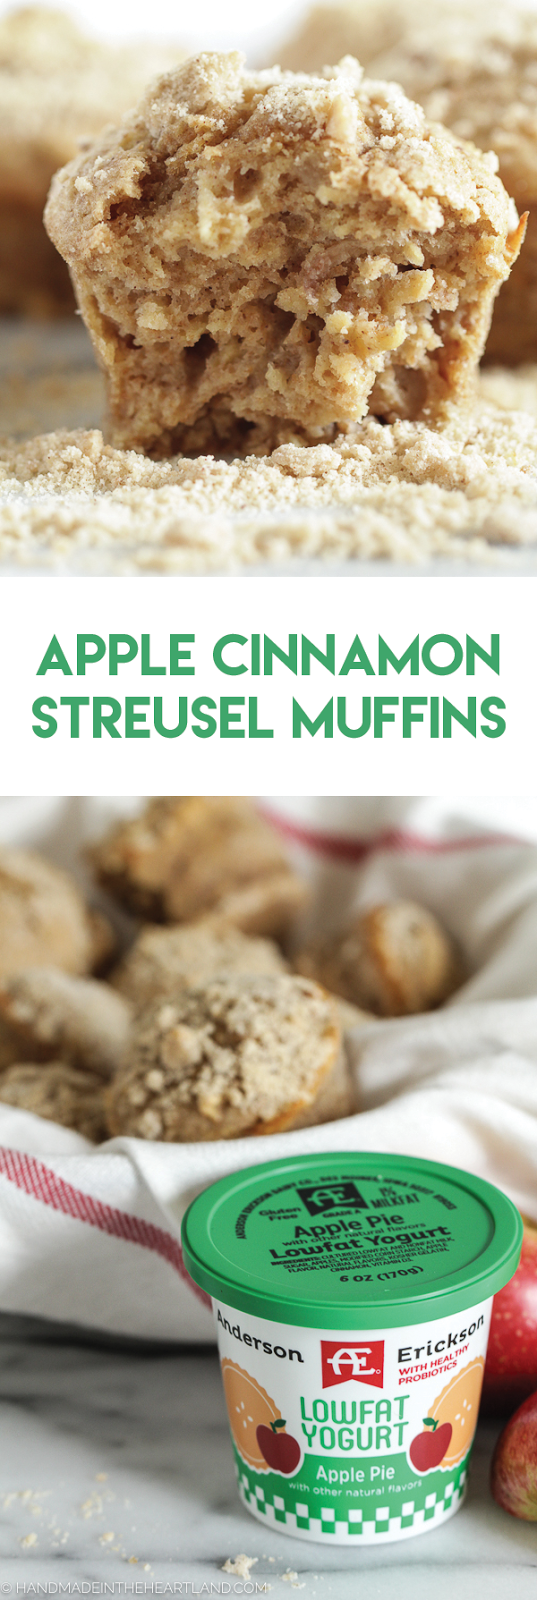 These apple cinnamon streusel muffins are the perfect fall breakfast muffin!